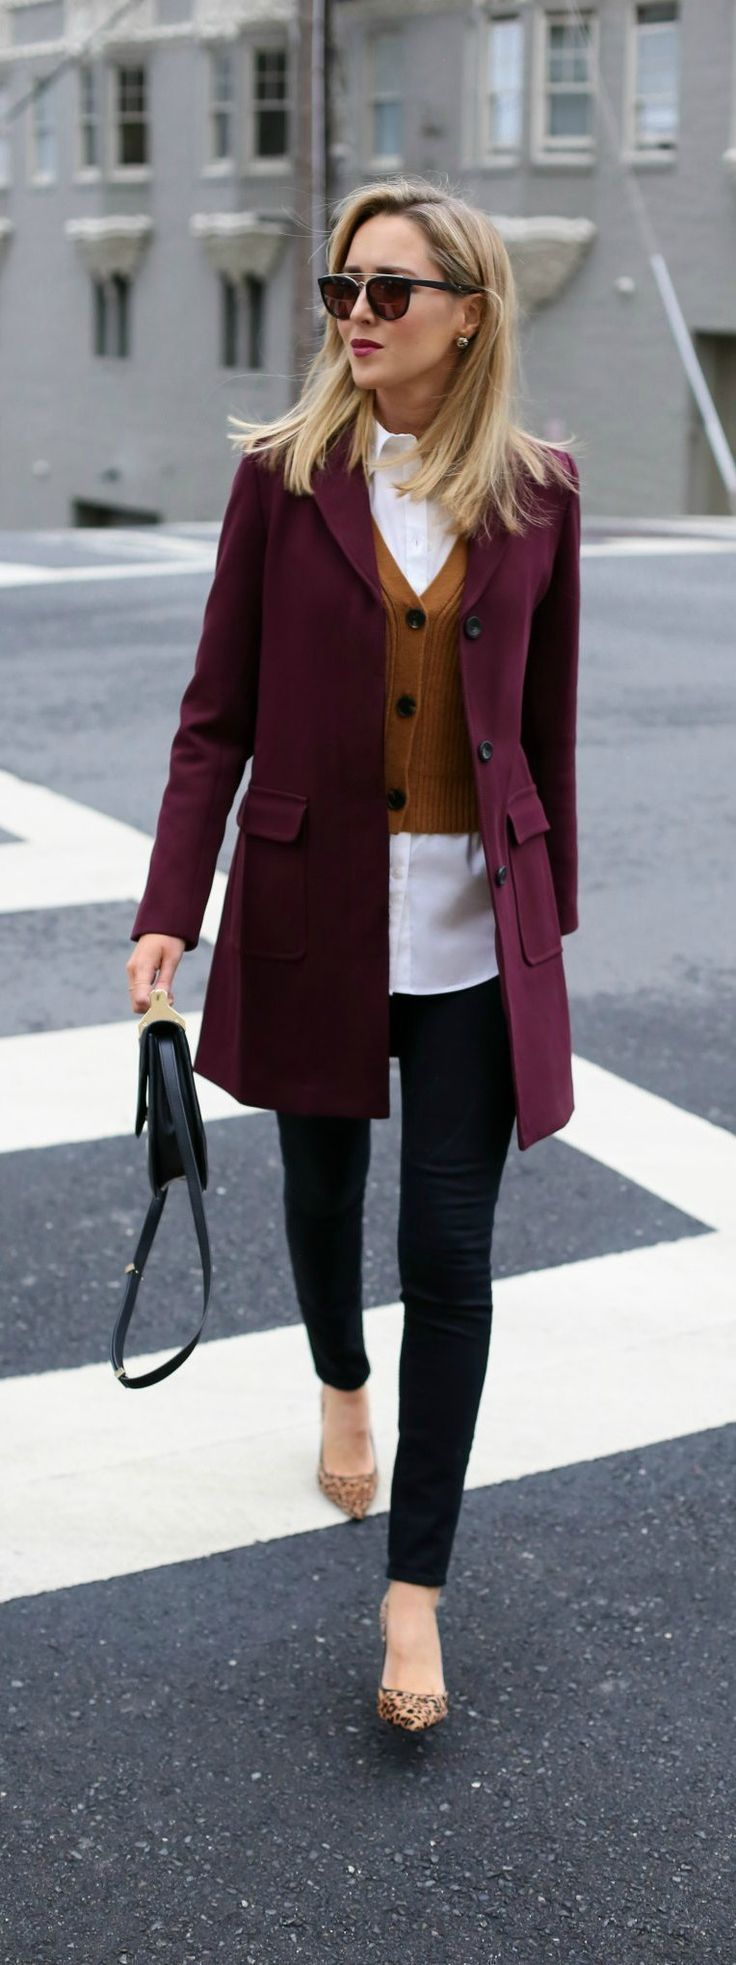 Knit mustard yellow sweater, burgundy coat, black skinny jeans and leopard pointy toe pump. Love this color combo!